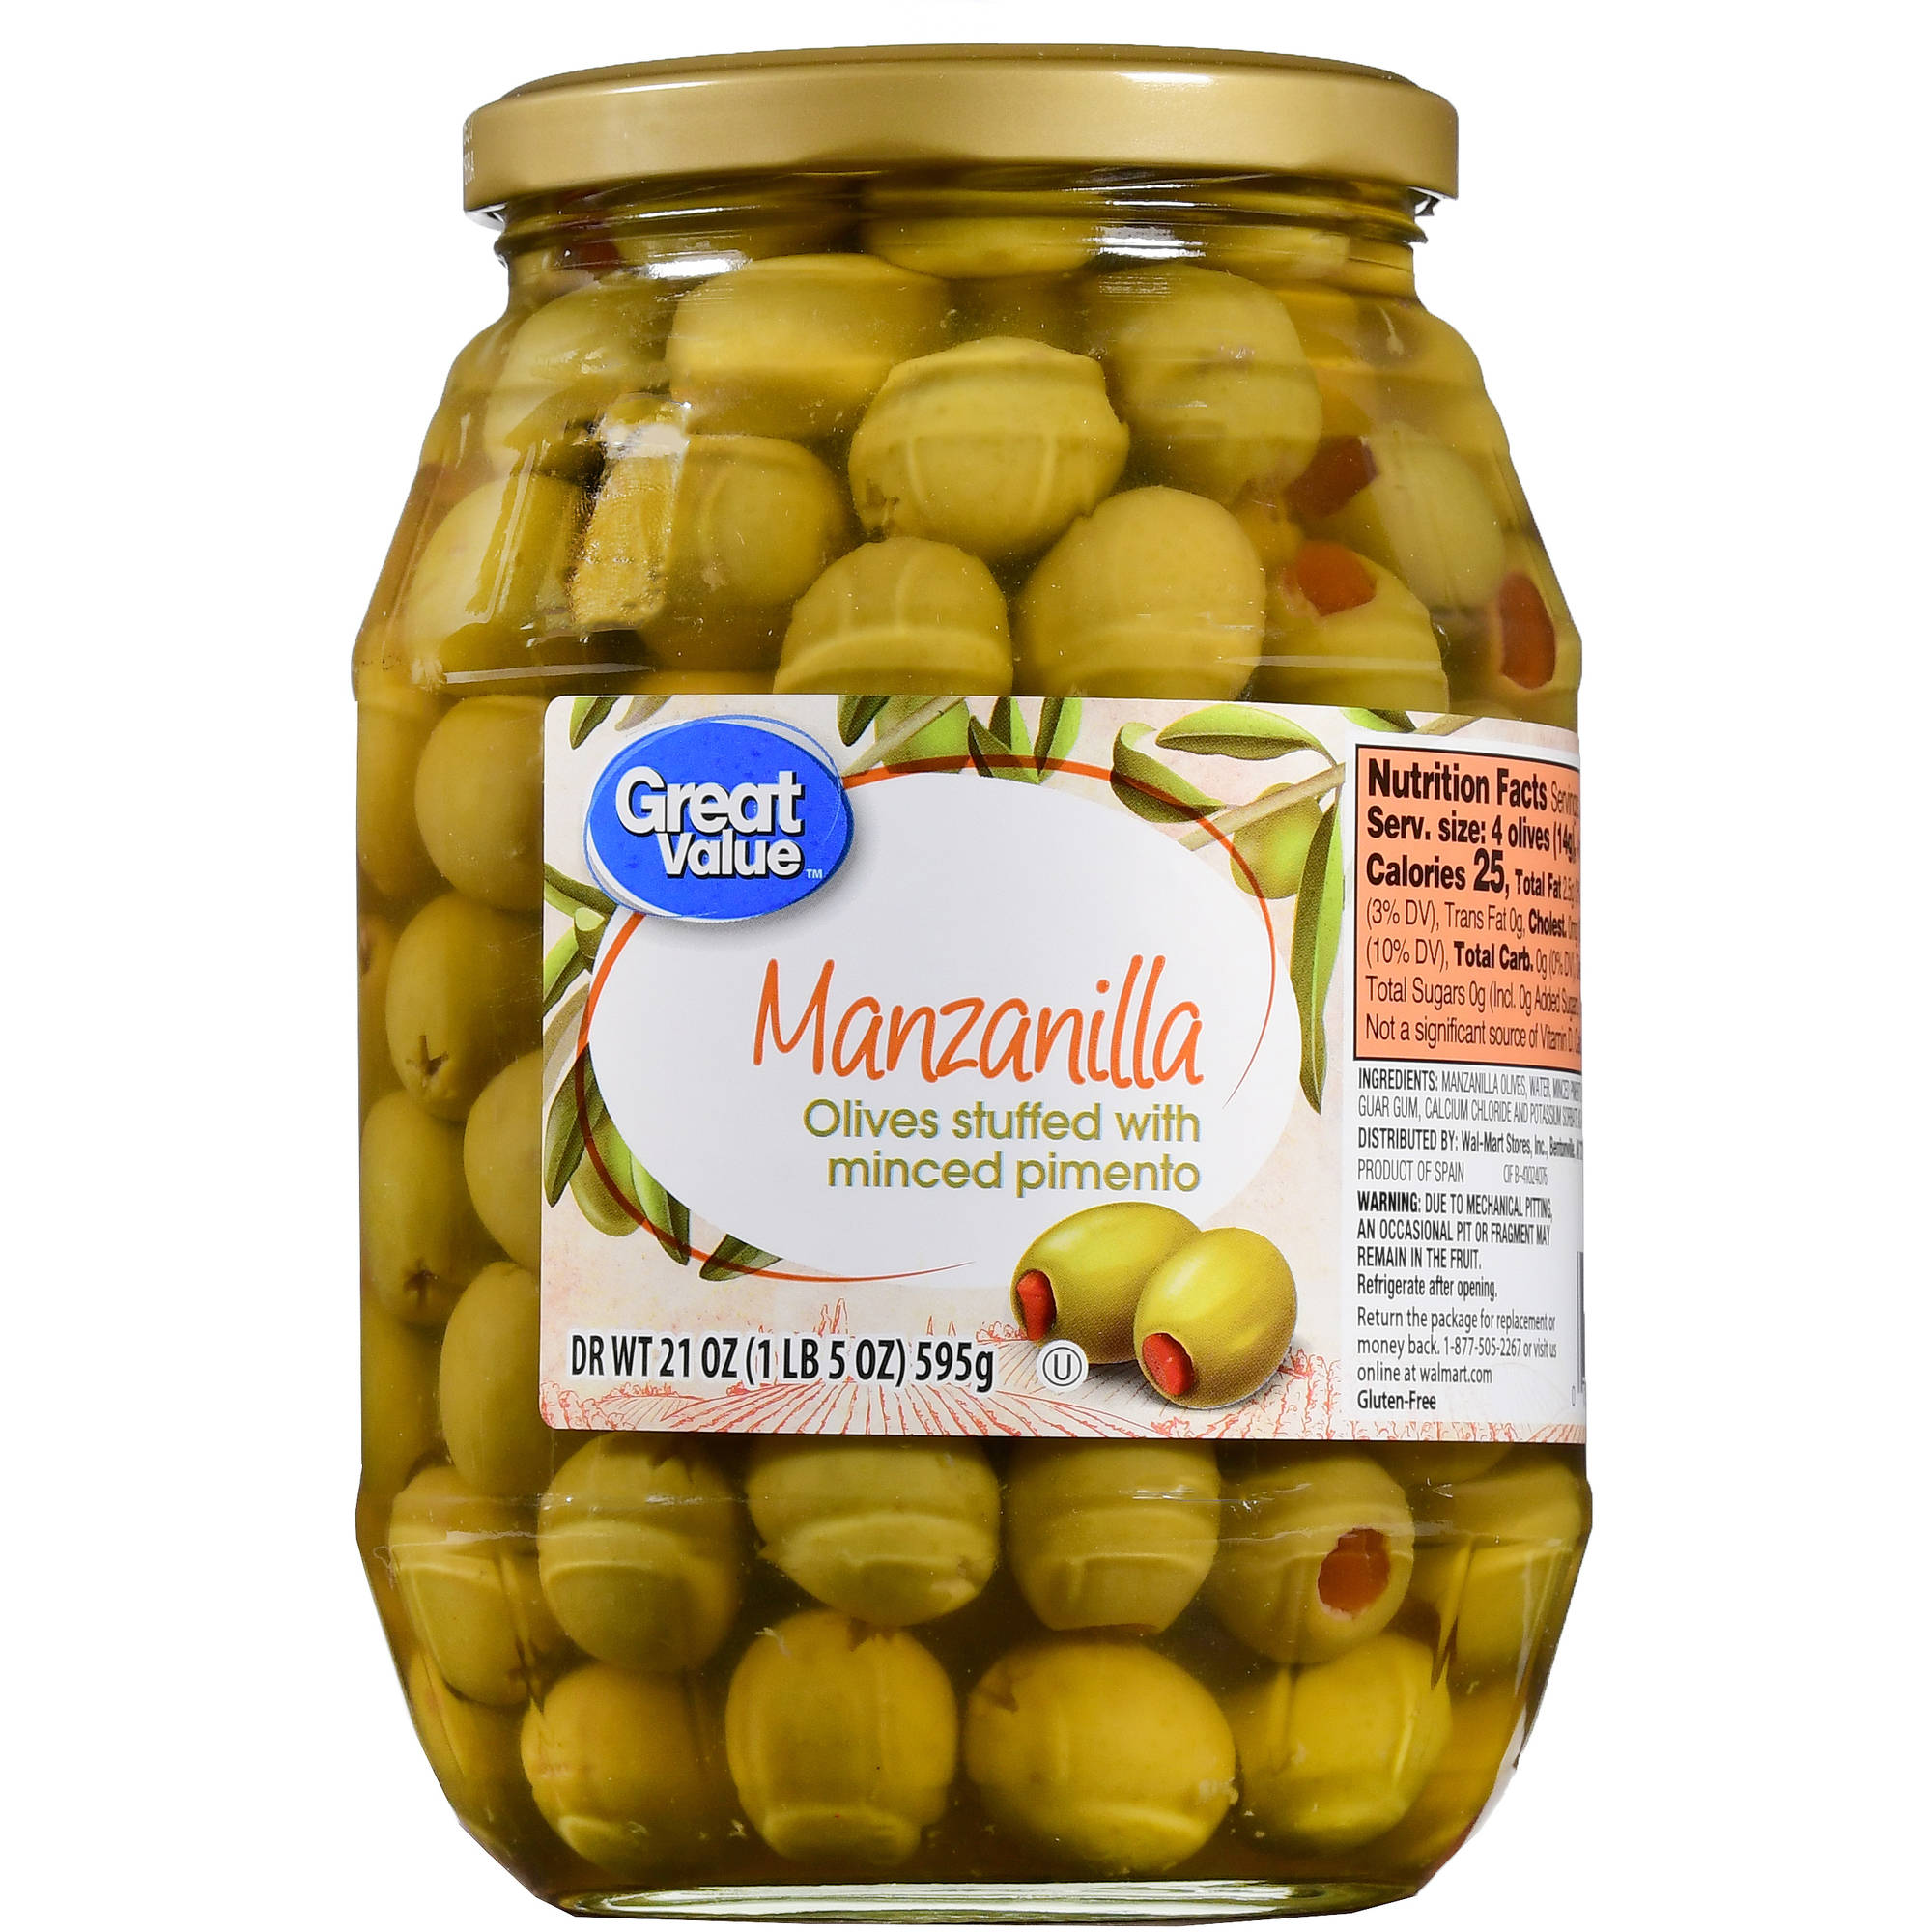 Great Value Minced Pimiento Stuffed Manzanilla Olives, 21 oz